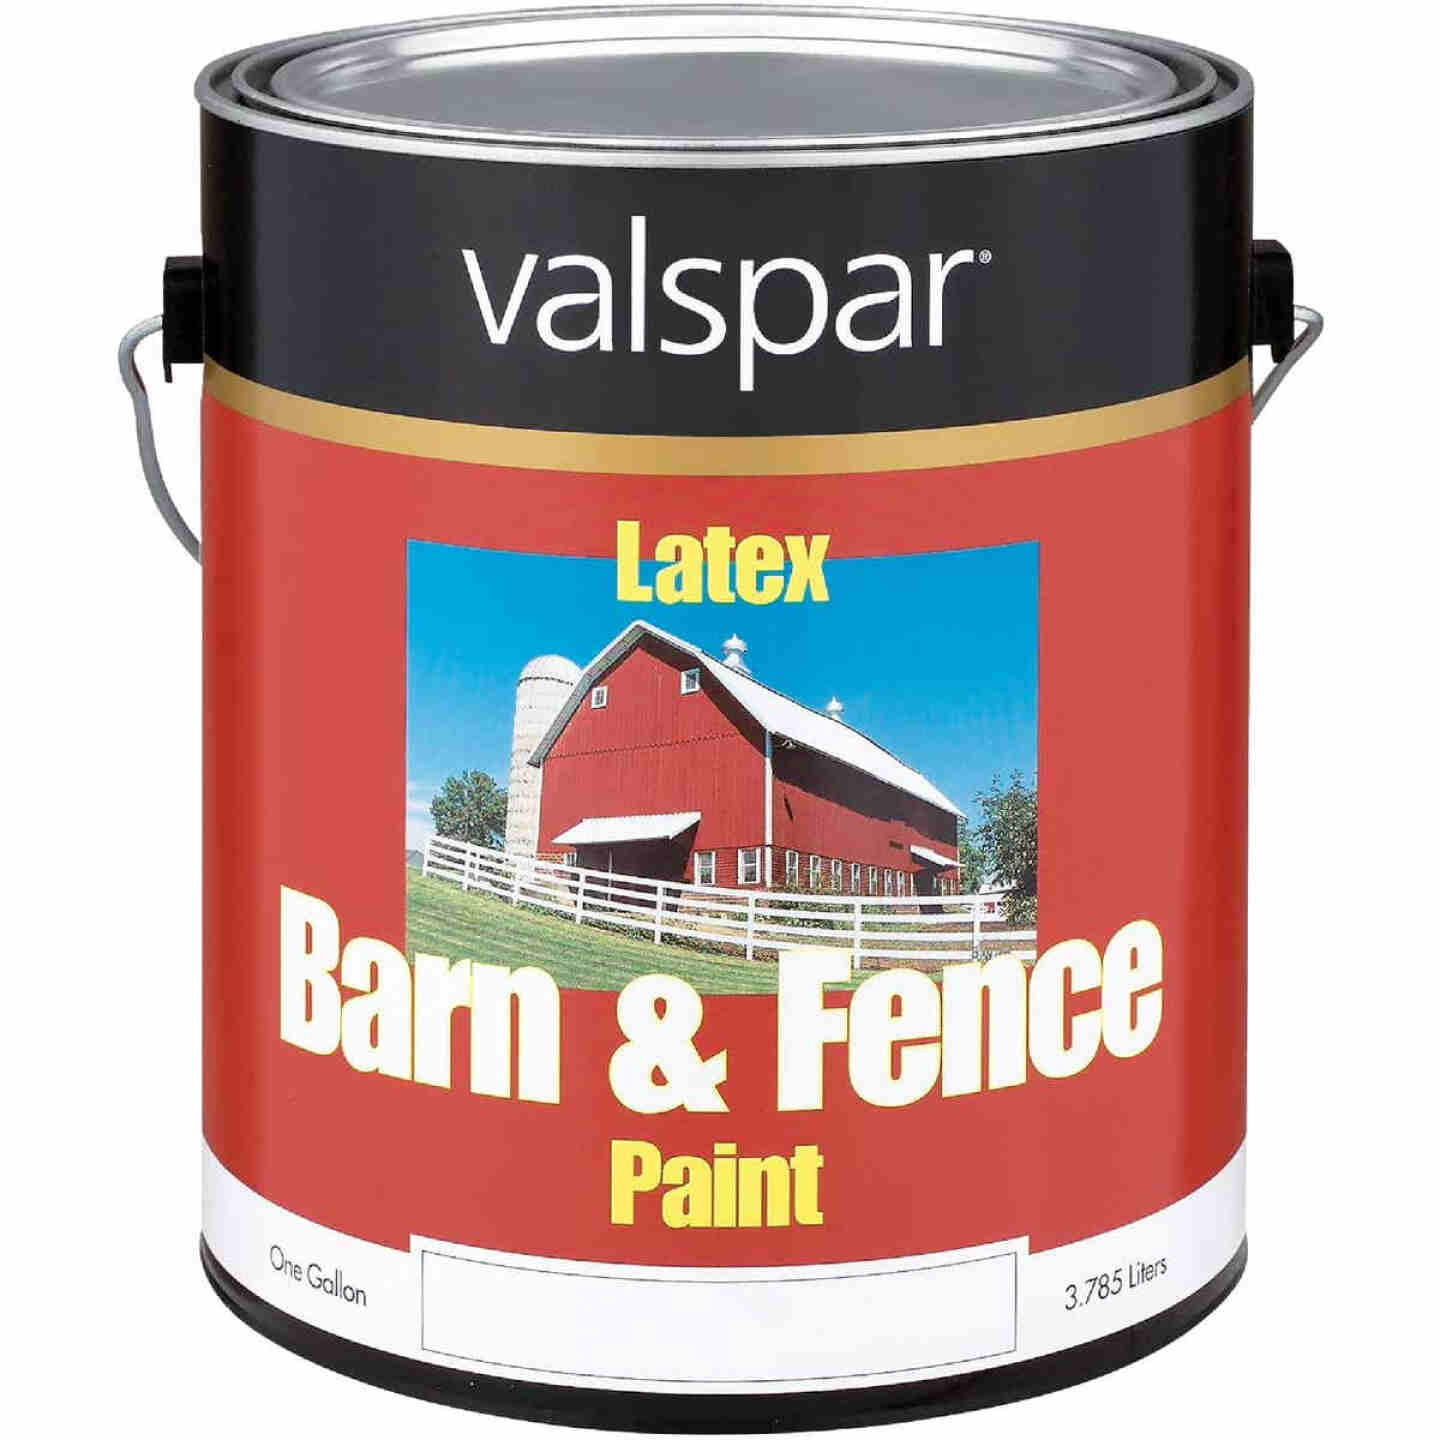 Valspar Latex Paint & Primer In One Flat Barn & Fence Paint, Red, 1 Gal. Image 1